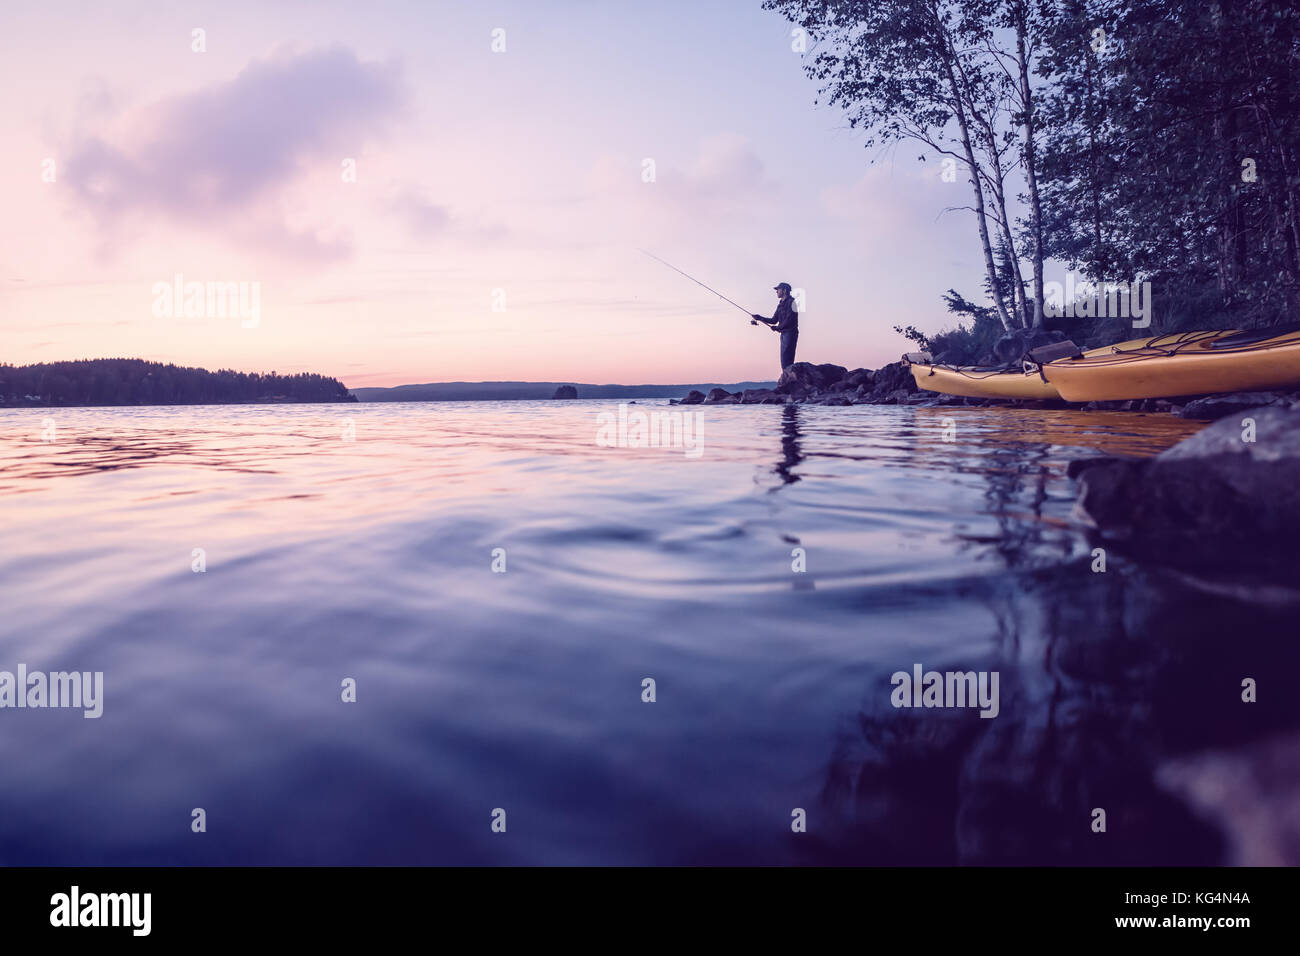 Fishing at a beautiful lake - Stock Image